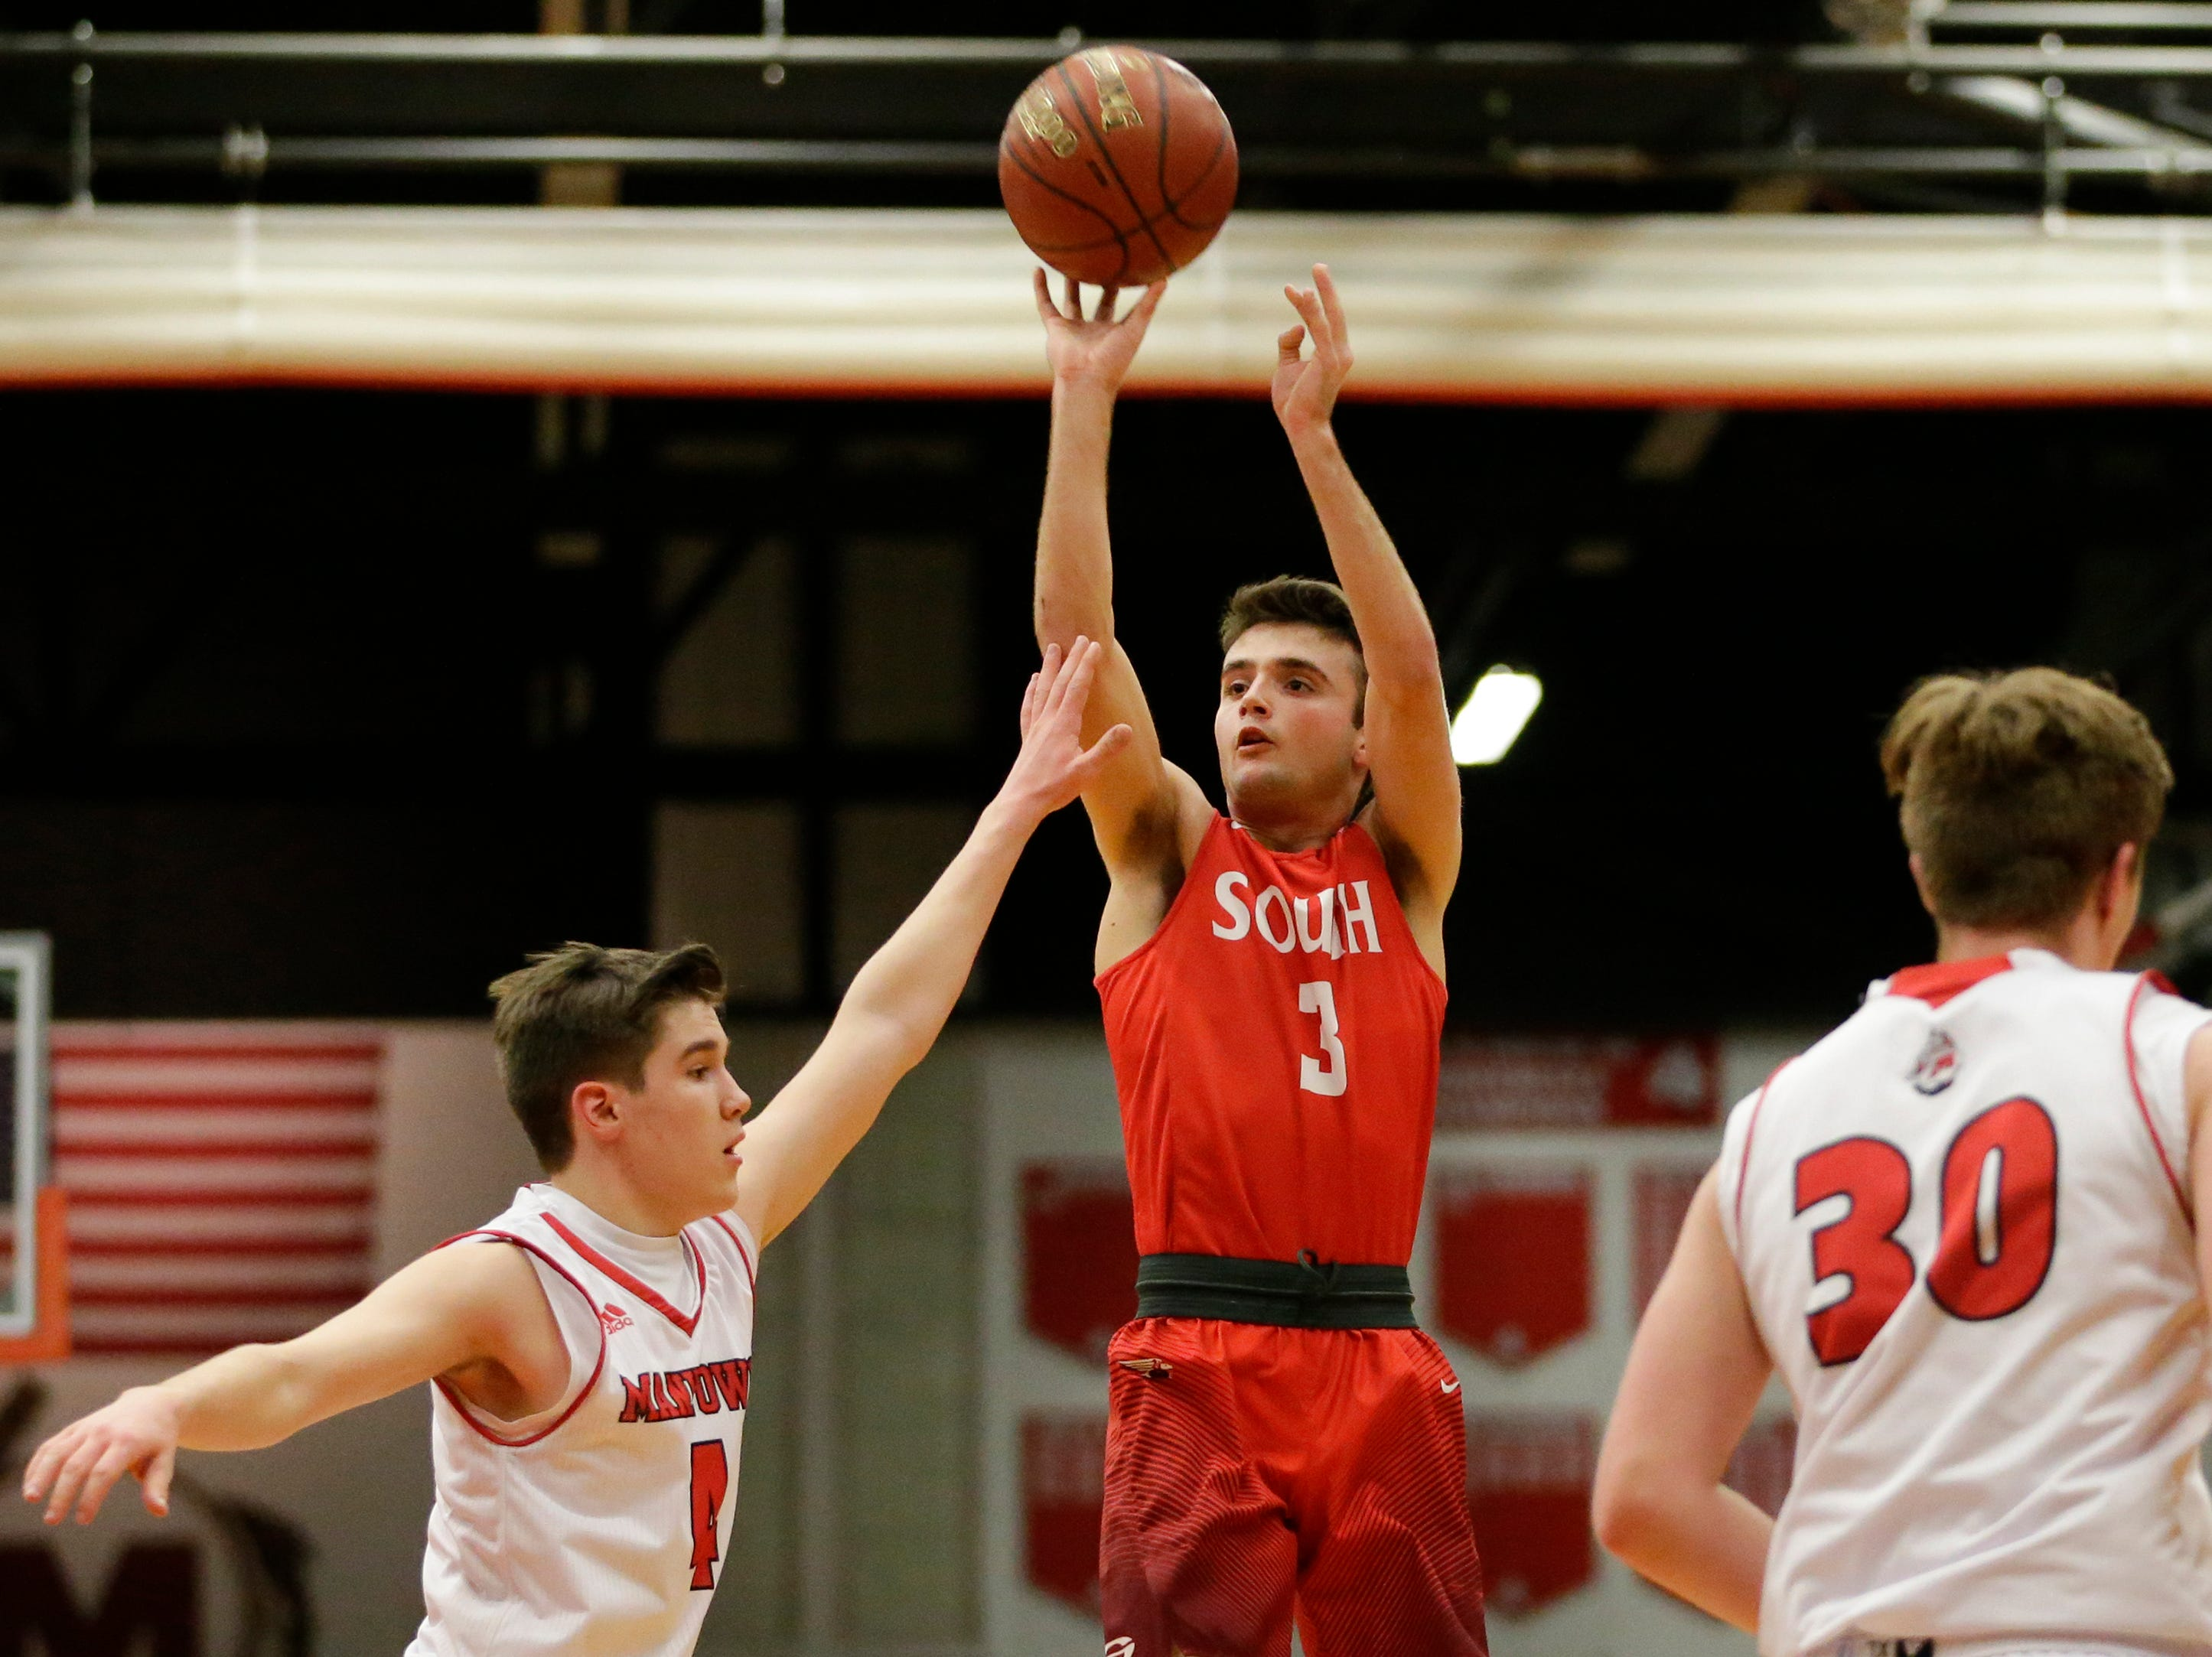 Sheboygan South's Josh Govek (3) puts up a shot against Manitowoc Lincoln at Manitowoc Lincoln High School Tuesday, February 5, 2019, in Manitowoc, Wis. Joshua Clark/USA TODAY NETWORK-Wisconsin